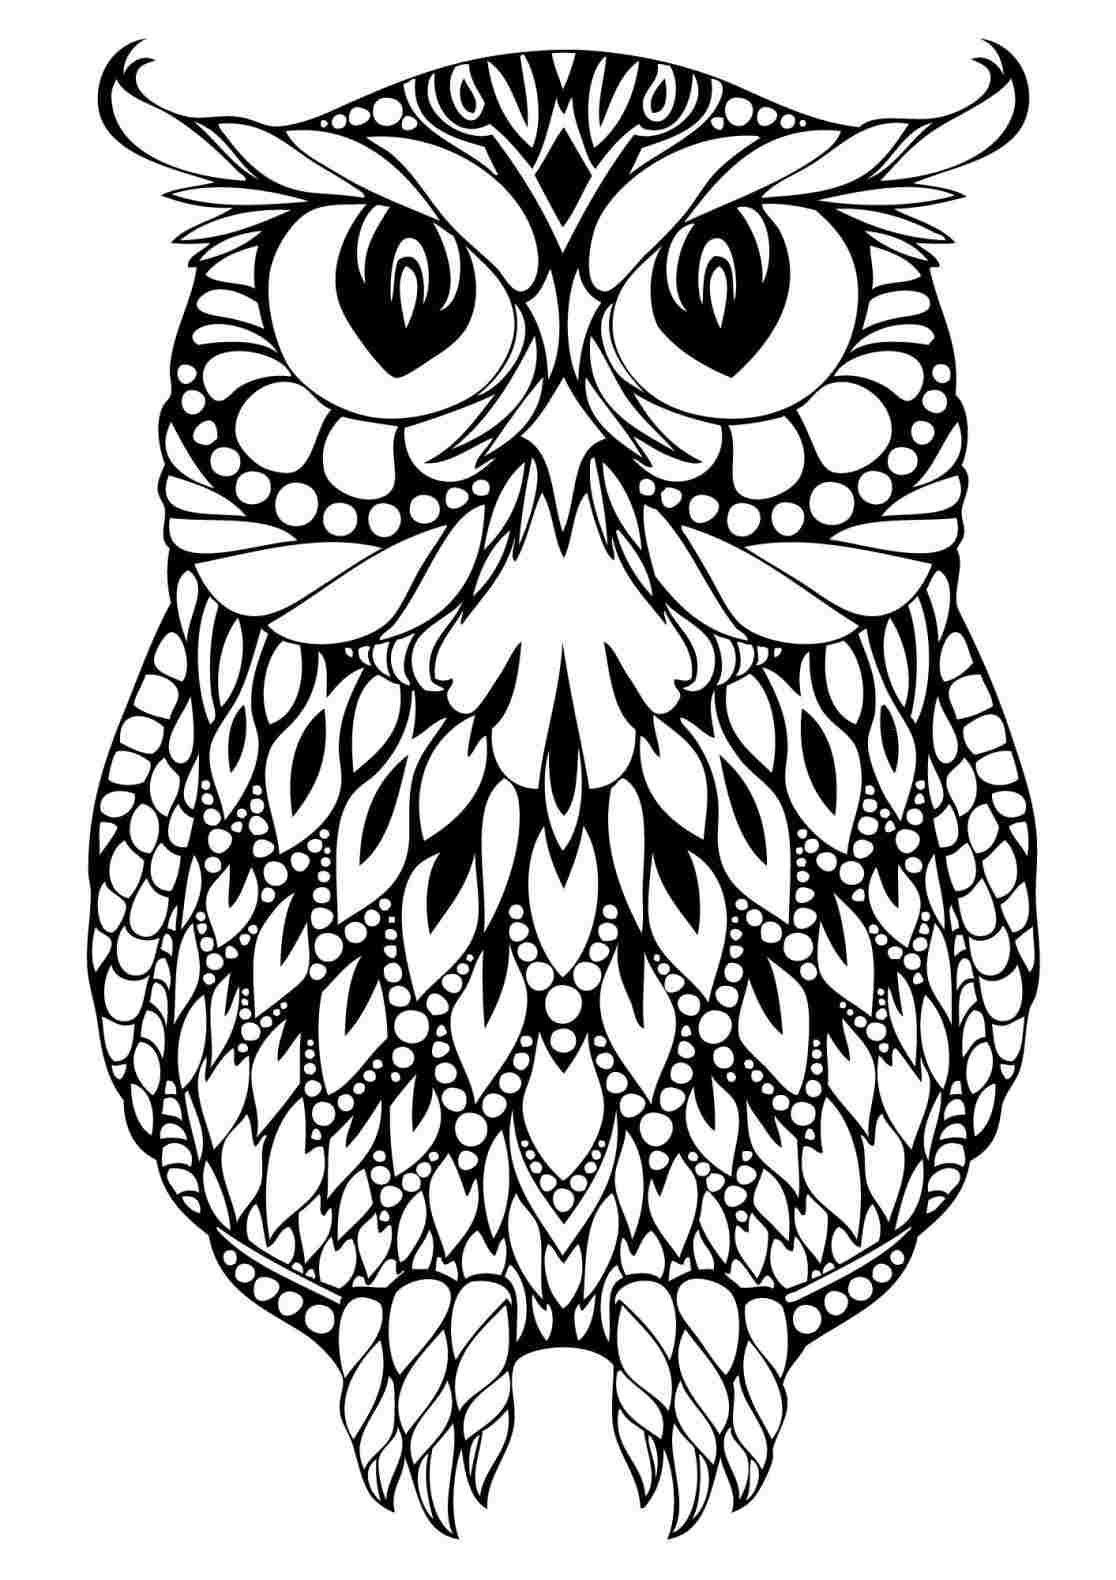 images of owls to color owls to color on pinterest owl coloring pages owl and owls to color of images